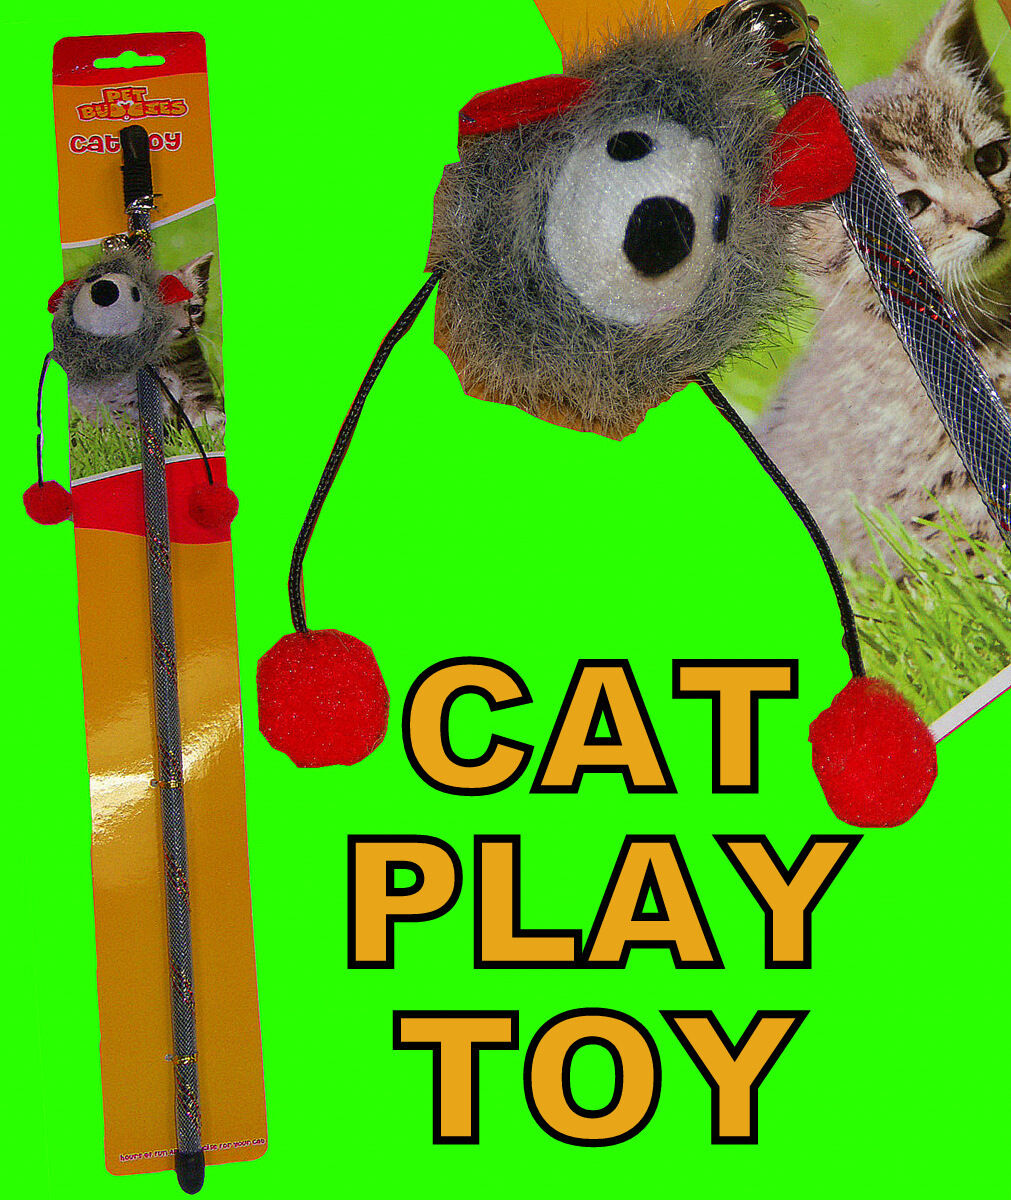 Cat Kitten Pet Play Toy Teasing Fluffy Animal Ball Stick Playful Toy Bell Fun